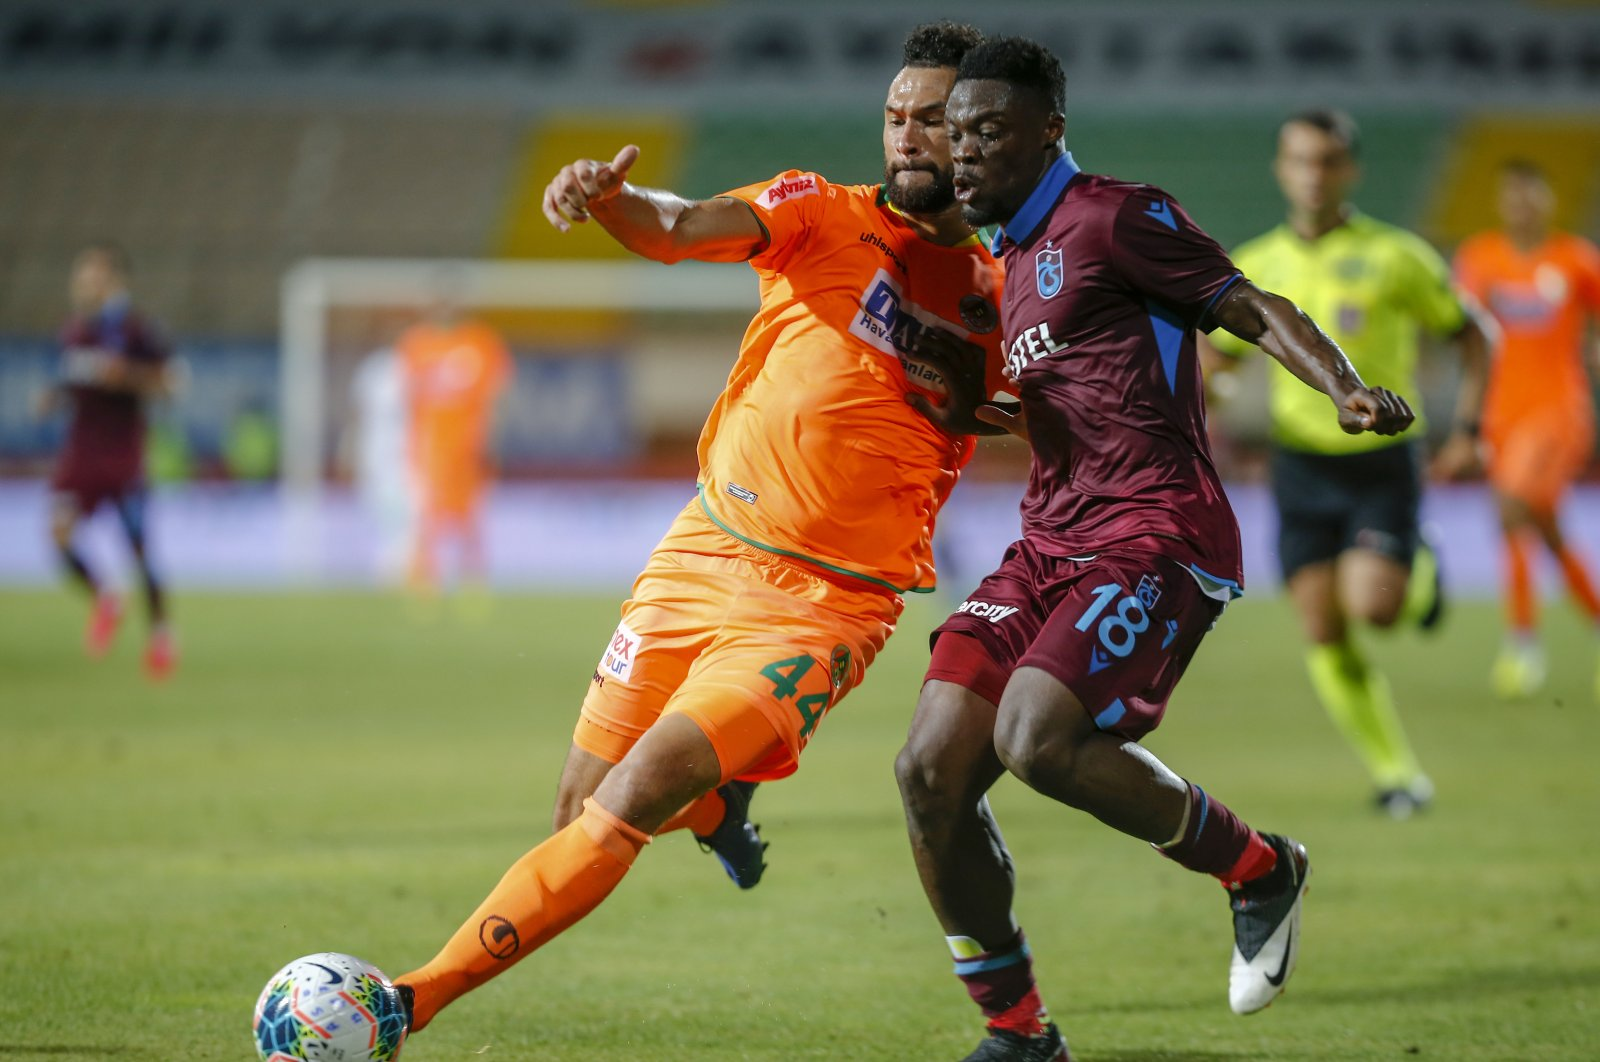 Alanyaspor's Steven Caulker and Trabzonspor's Caleb Ekuban vie for the ball during a Süper Lig match in Antalya, Turkey, June 22, 2020. (AA Photo)